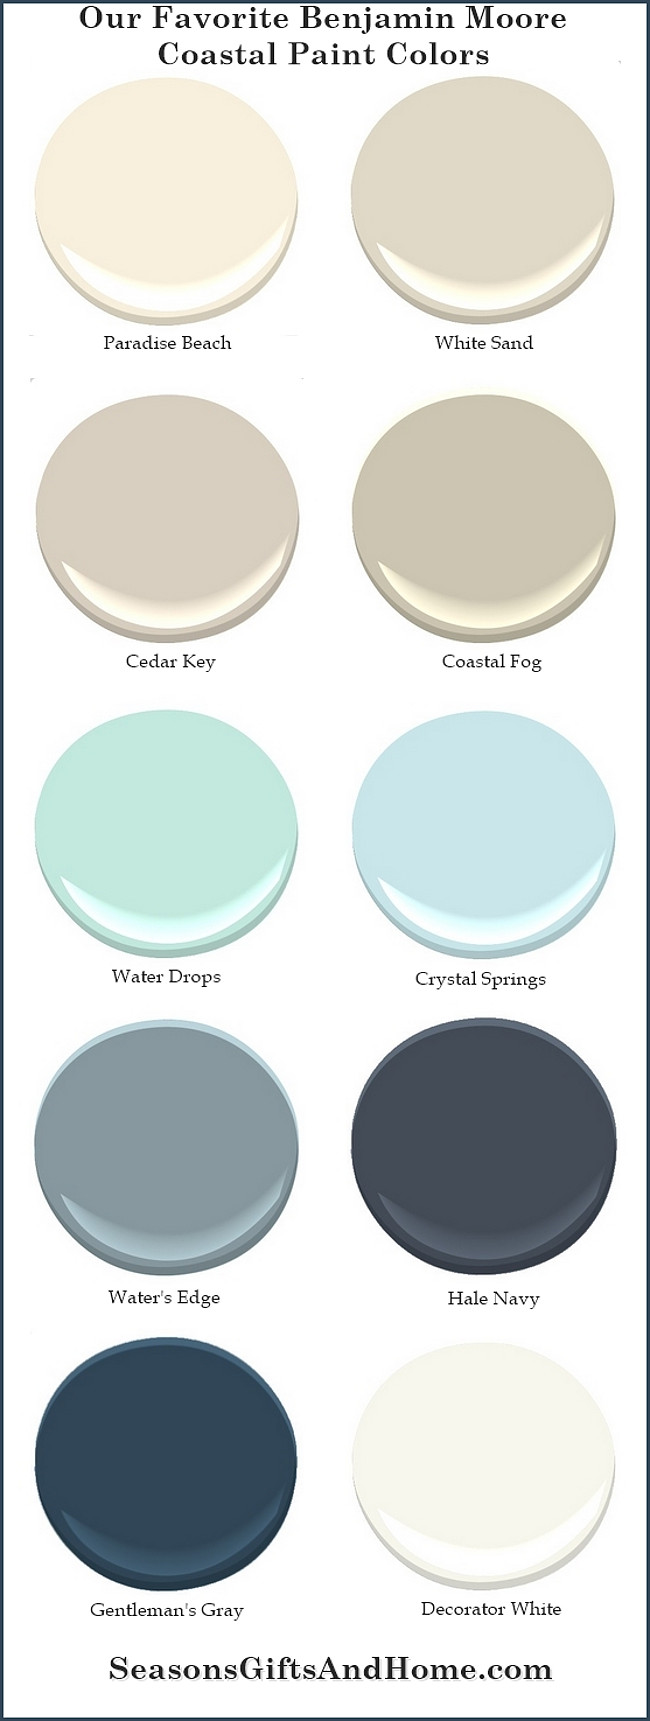 Favorite Benjamin Moore Coastal Paint Colors. Paradise Beach Benjamin Moore. White Sand Benjamin Moore. Cedar Key Benjamin Moore. Coastal Fog Benjamin Moore. Water Drops Benjamin Moore. Crystal Springs Benjamin Moore. Water's Edge Benjamin Moore. Hale Navy Benjamin Moore. Gentleman's Gray Benjamin Moore. Decorator's White Benjamin Moore. #BenjaminMoore #Coastal #PaintColor Via Seasons Gifts and Home.